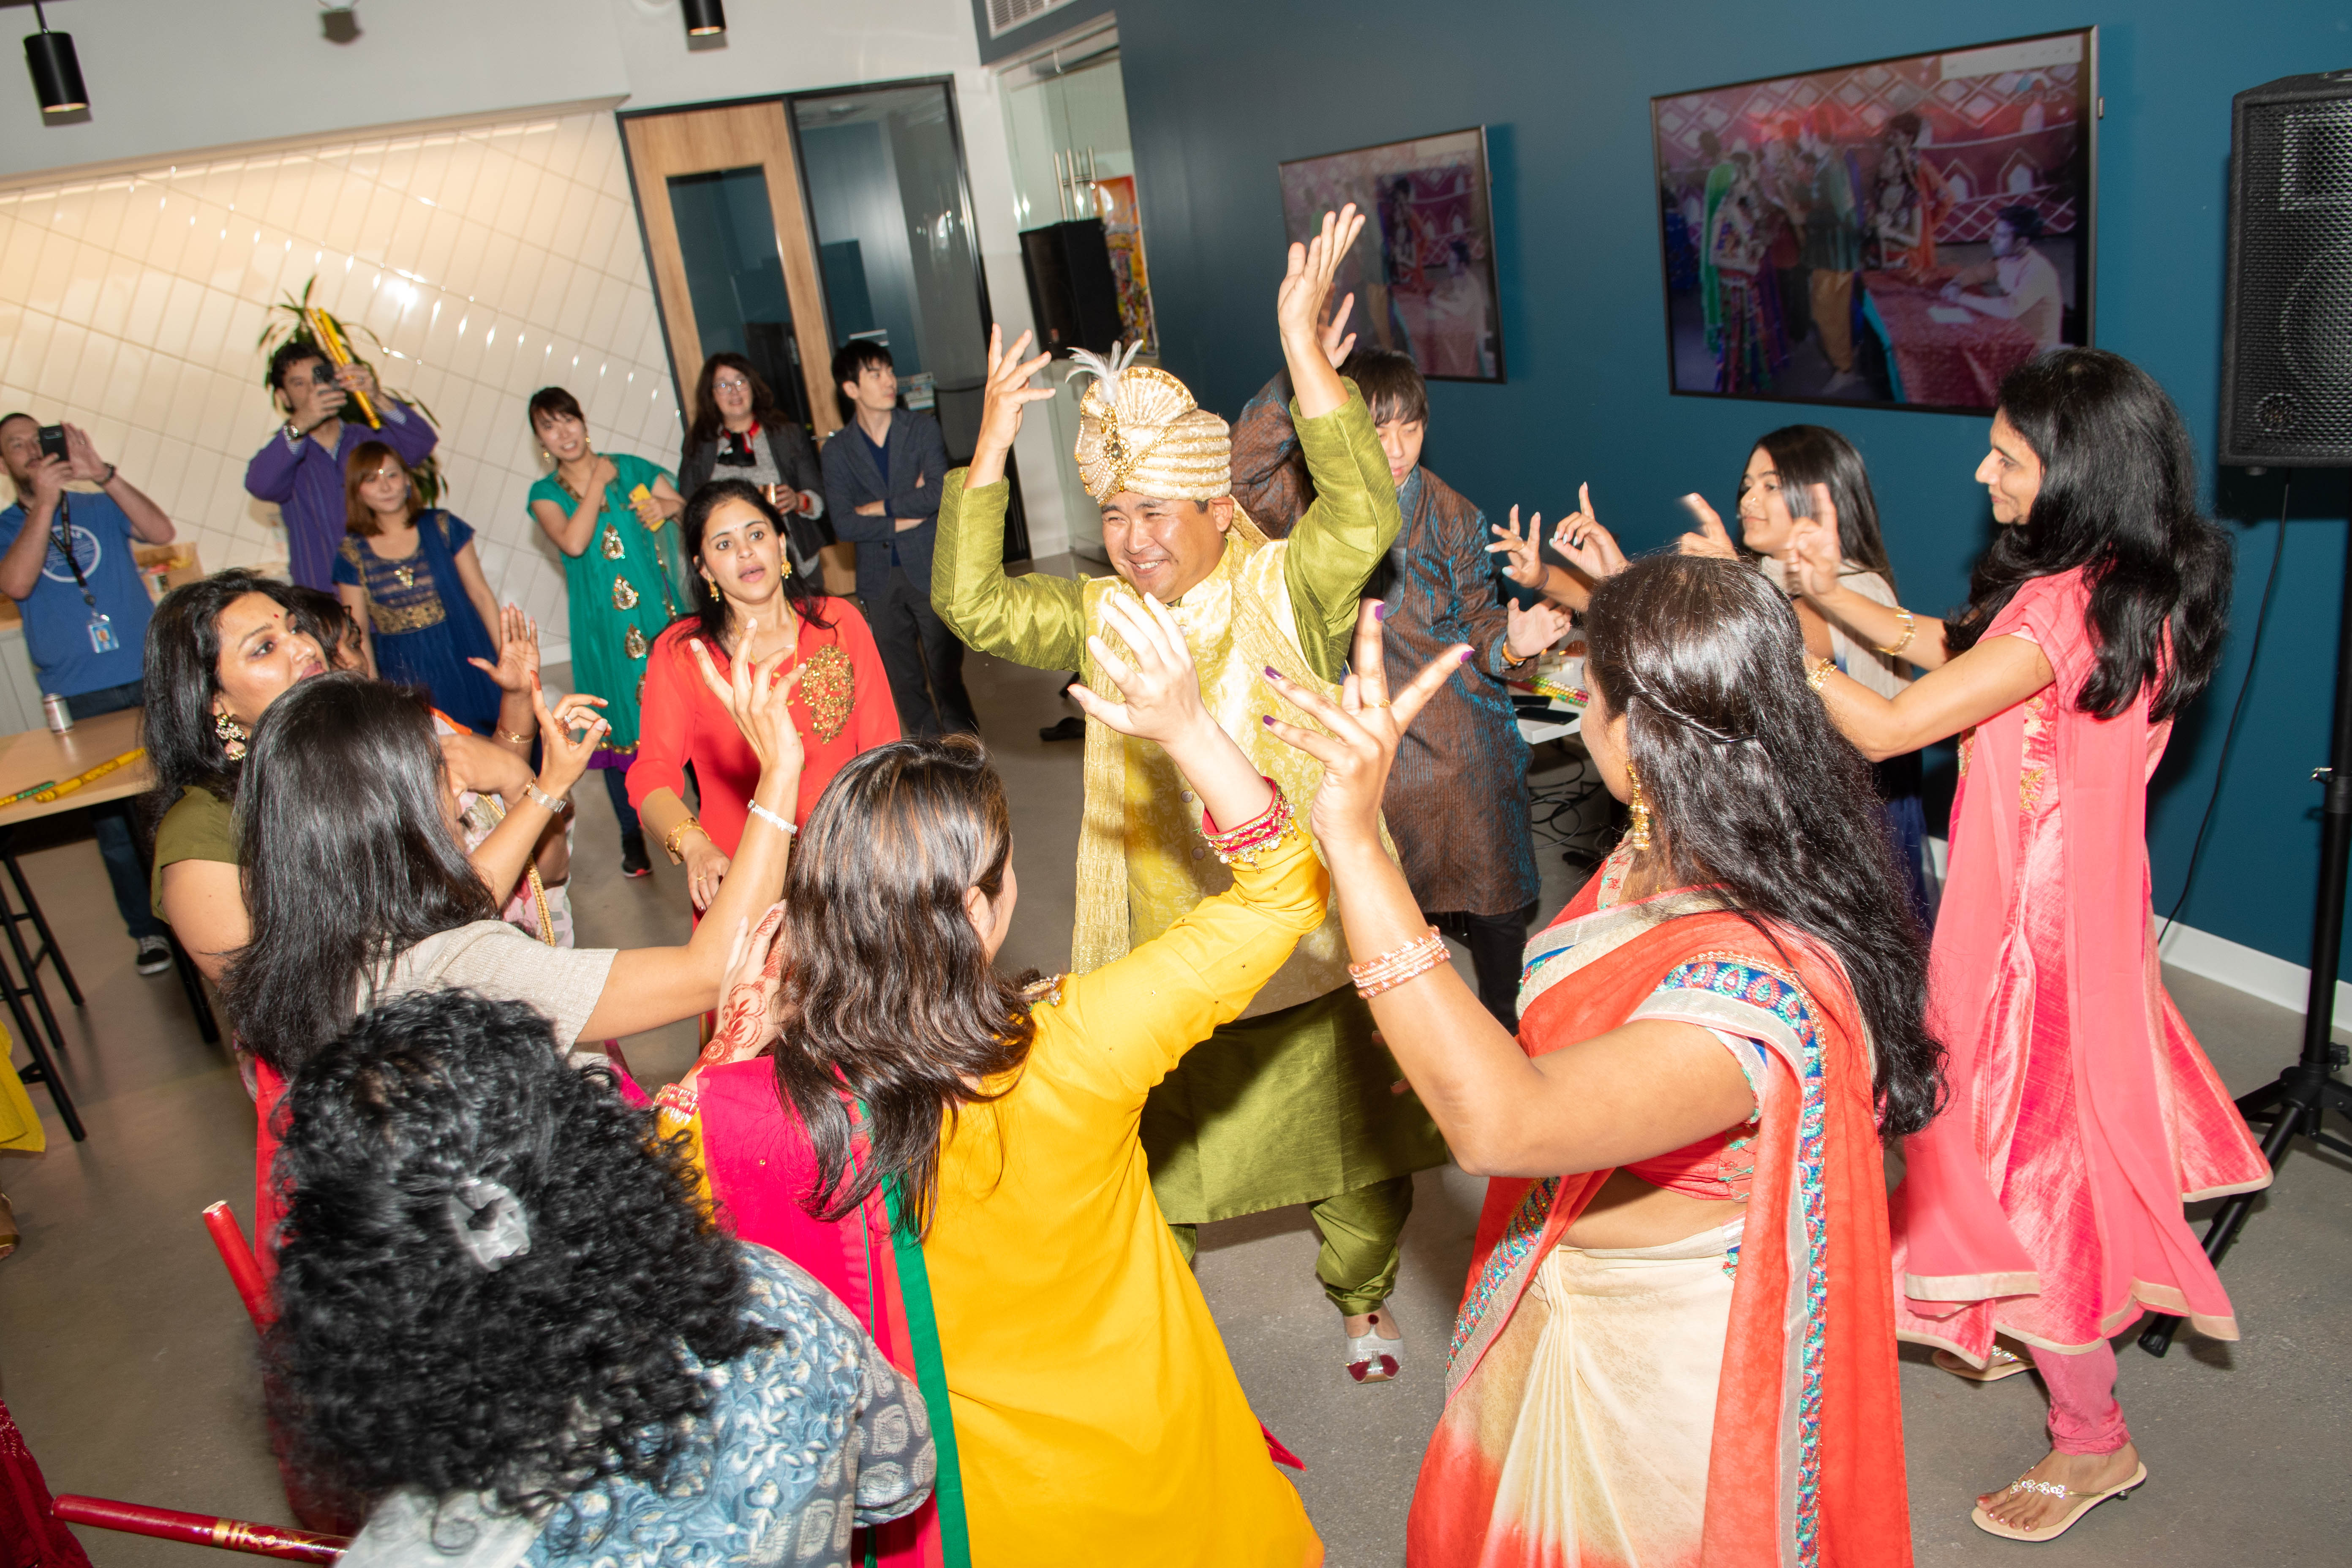 A group of people dancing indoors. They wear colorful clothing. This is part of a Diwali celebration.